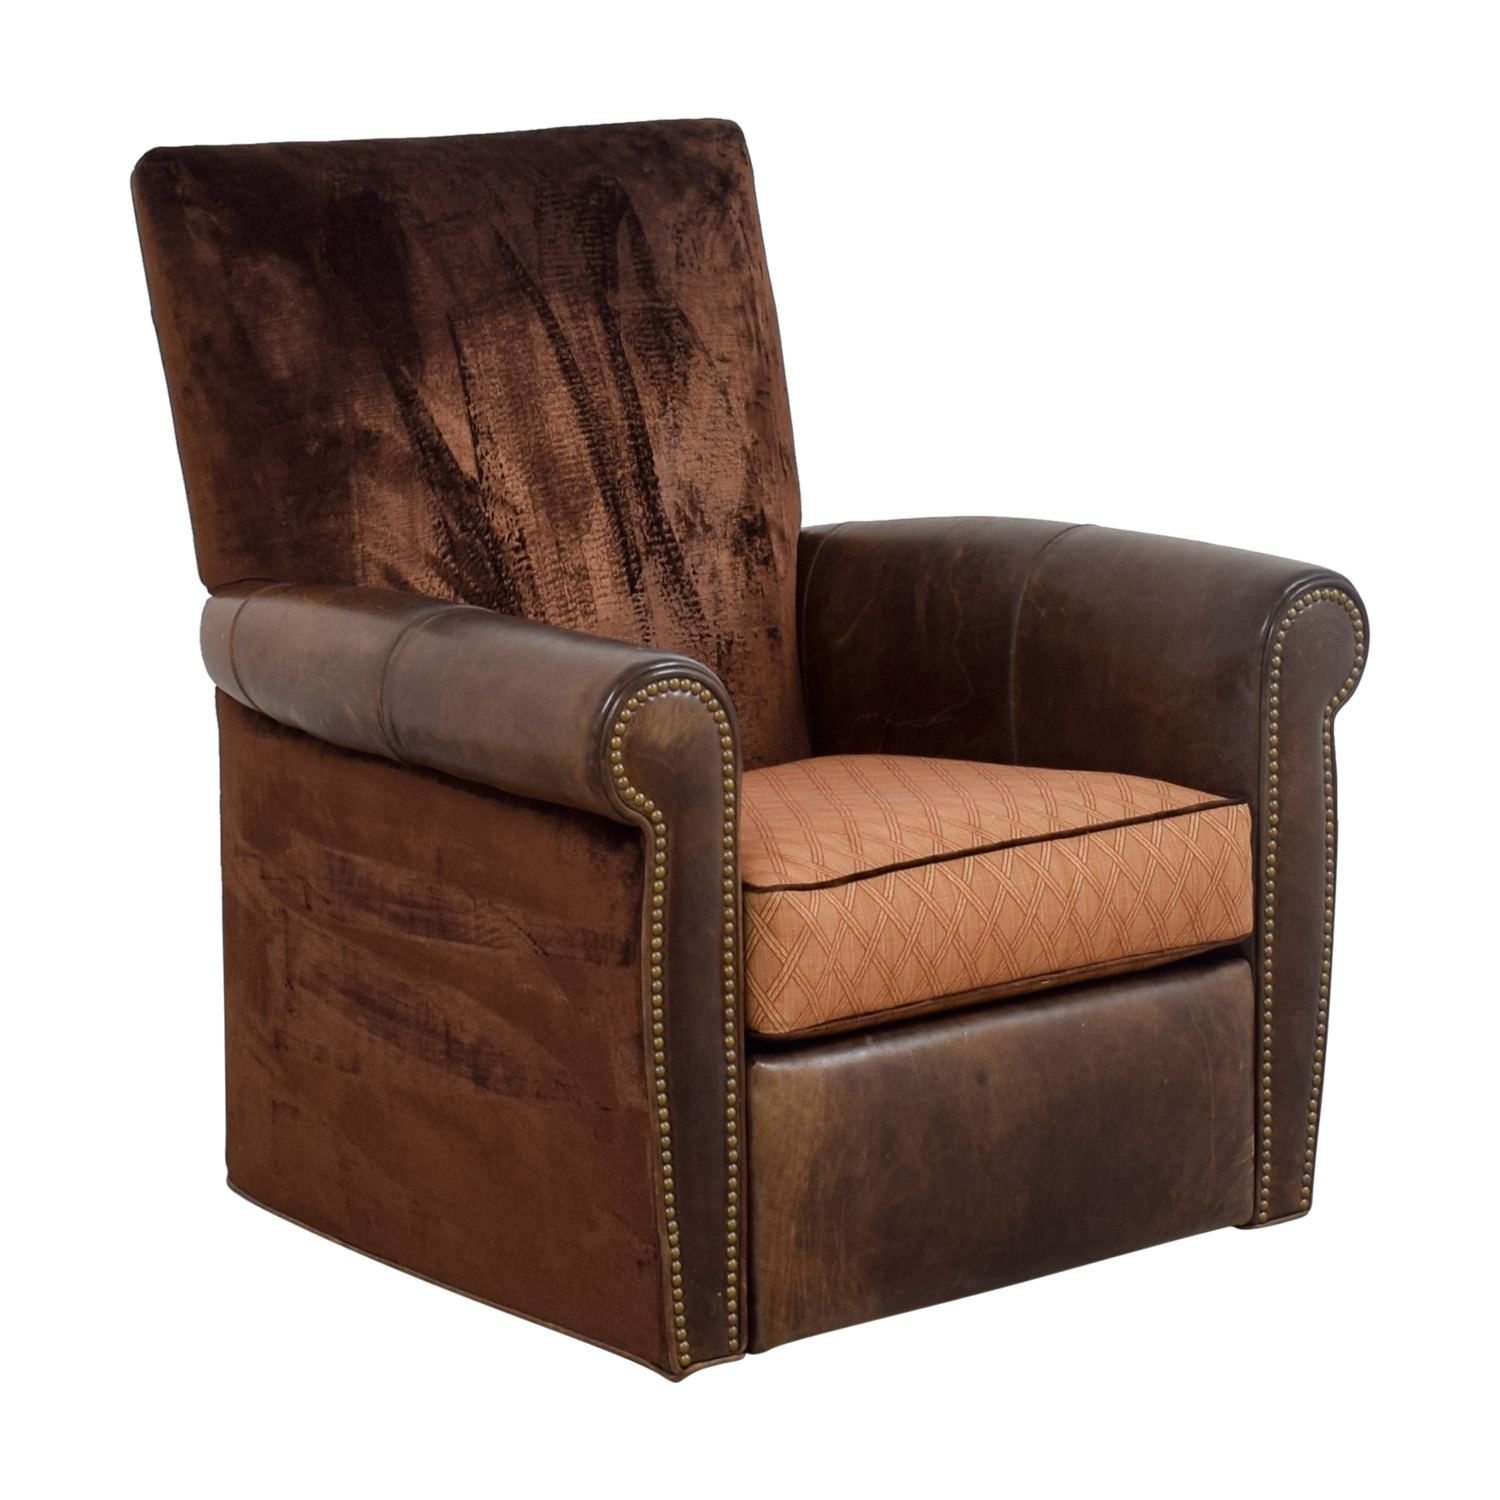 Arhaus Arhaus Brown Leather and Velvet Nailhead Swivel Recliner brown